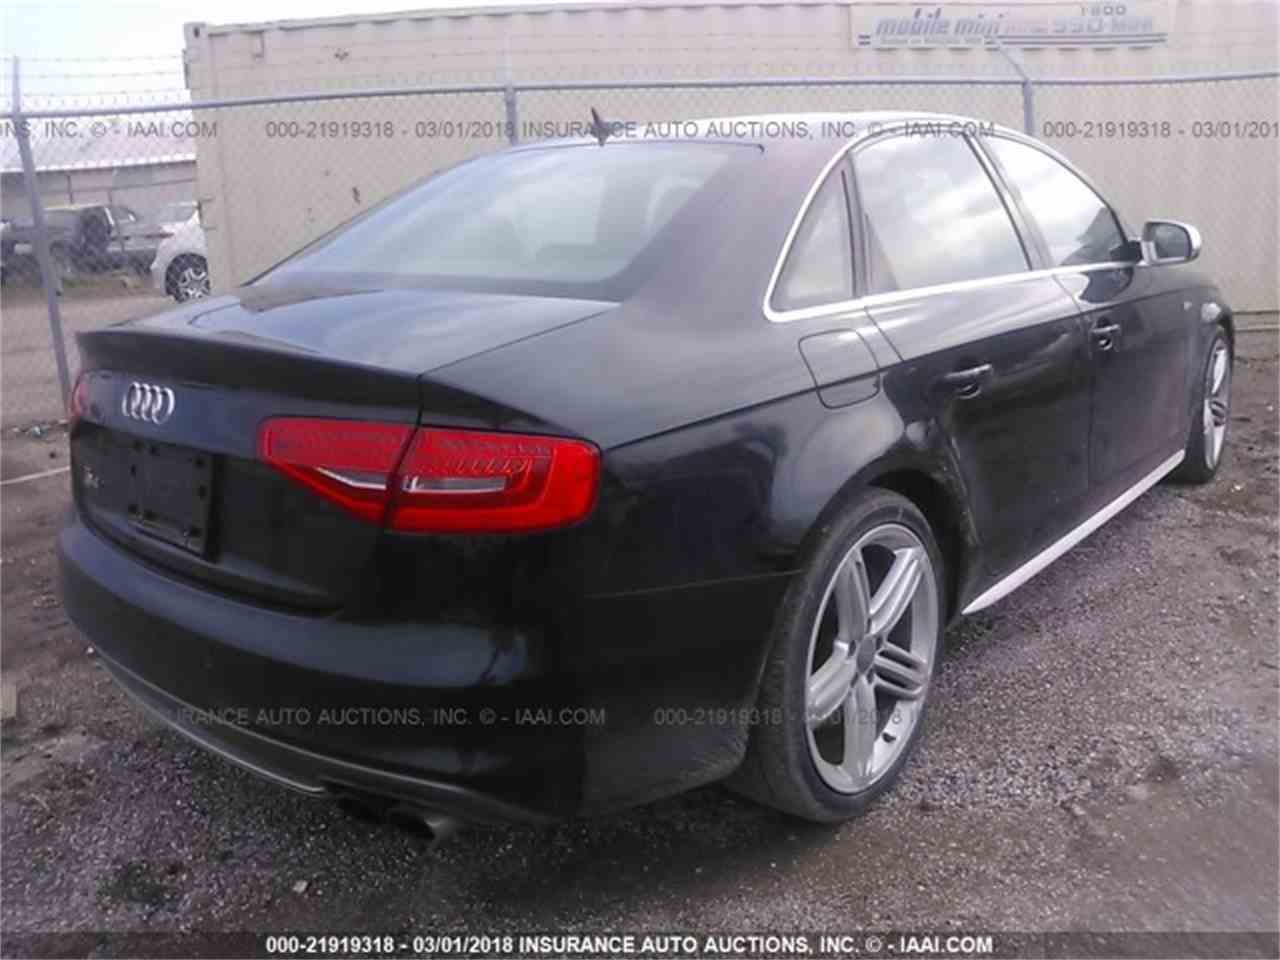 v exterior outstanding sale cars for audi station wagon now